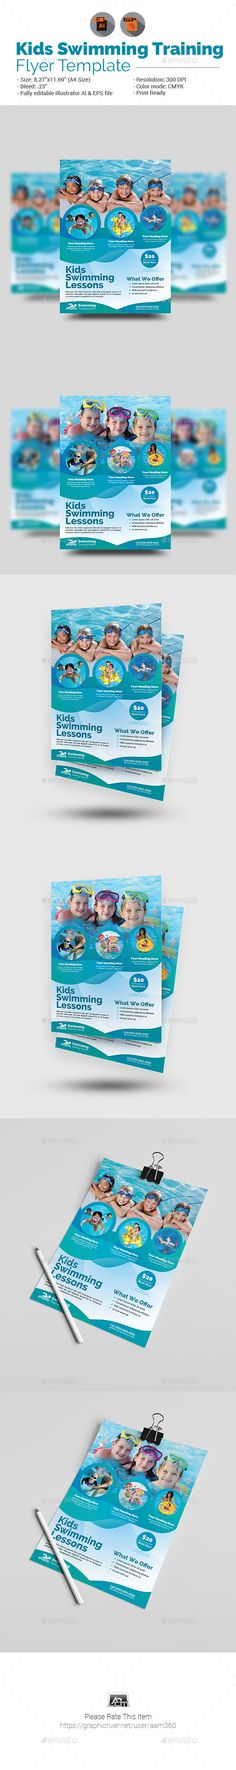 pool service flyers. Kids Swimming Training Flyer By Aam360 Similar Templates:INFORMATIONS FOR THIS FLYER:FEATURES: Pool Service Flyers A